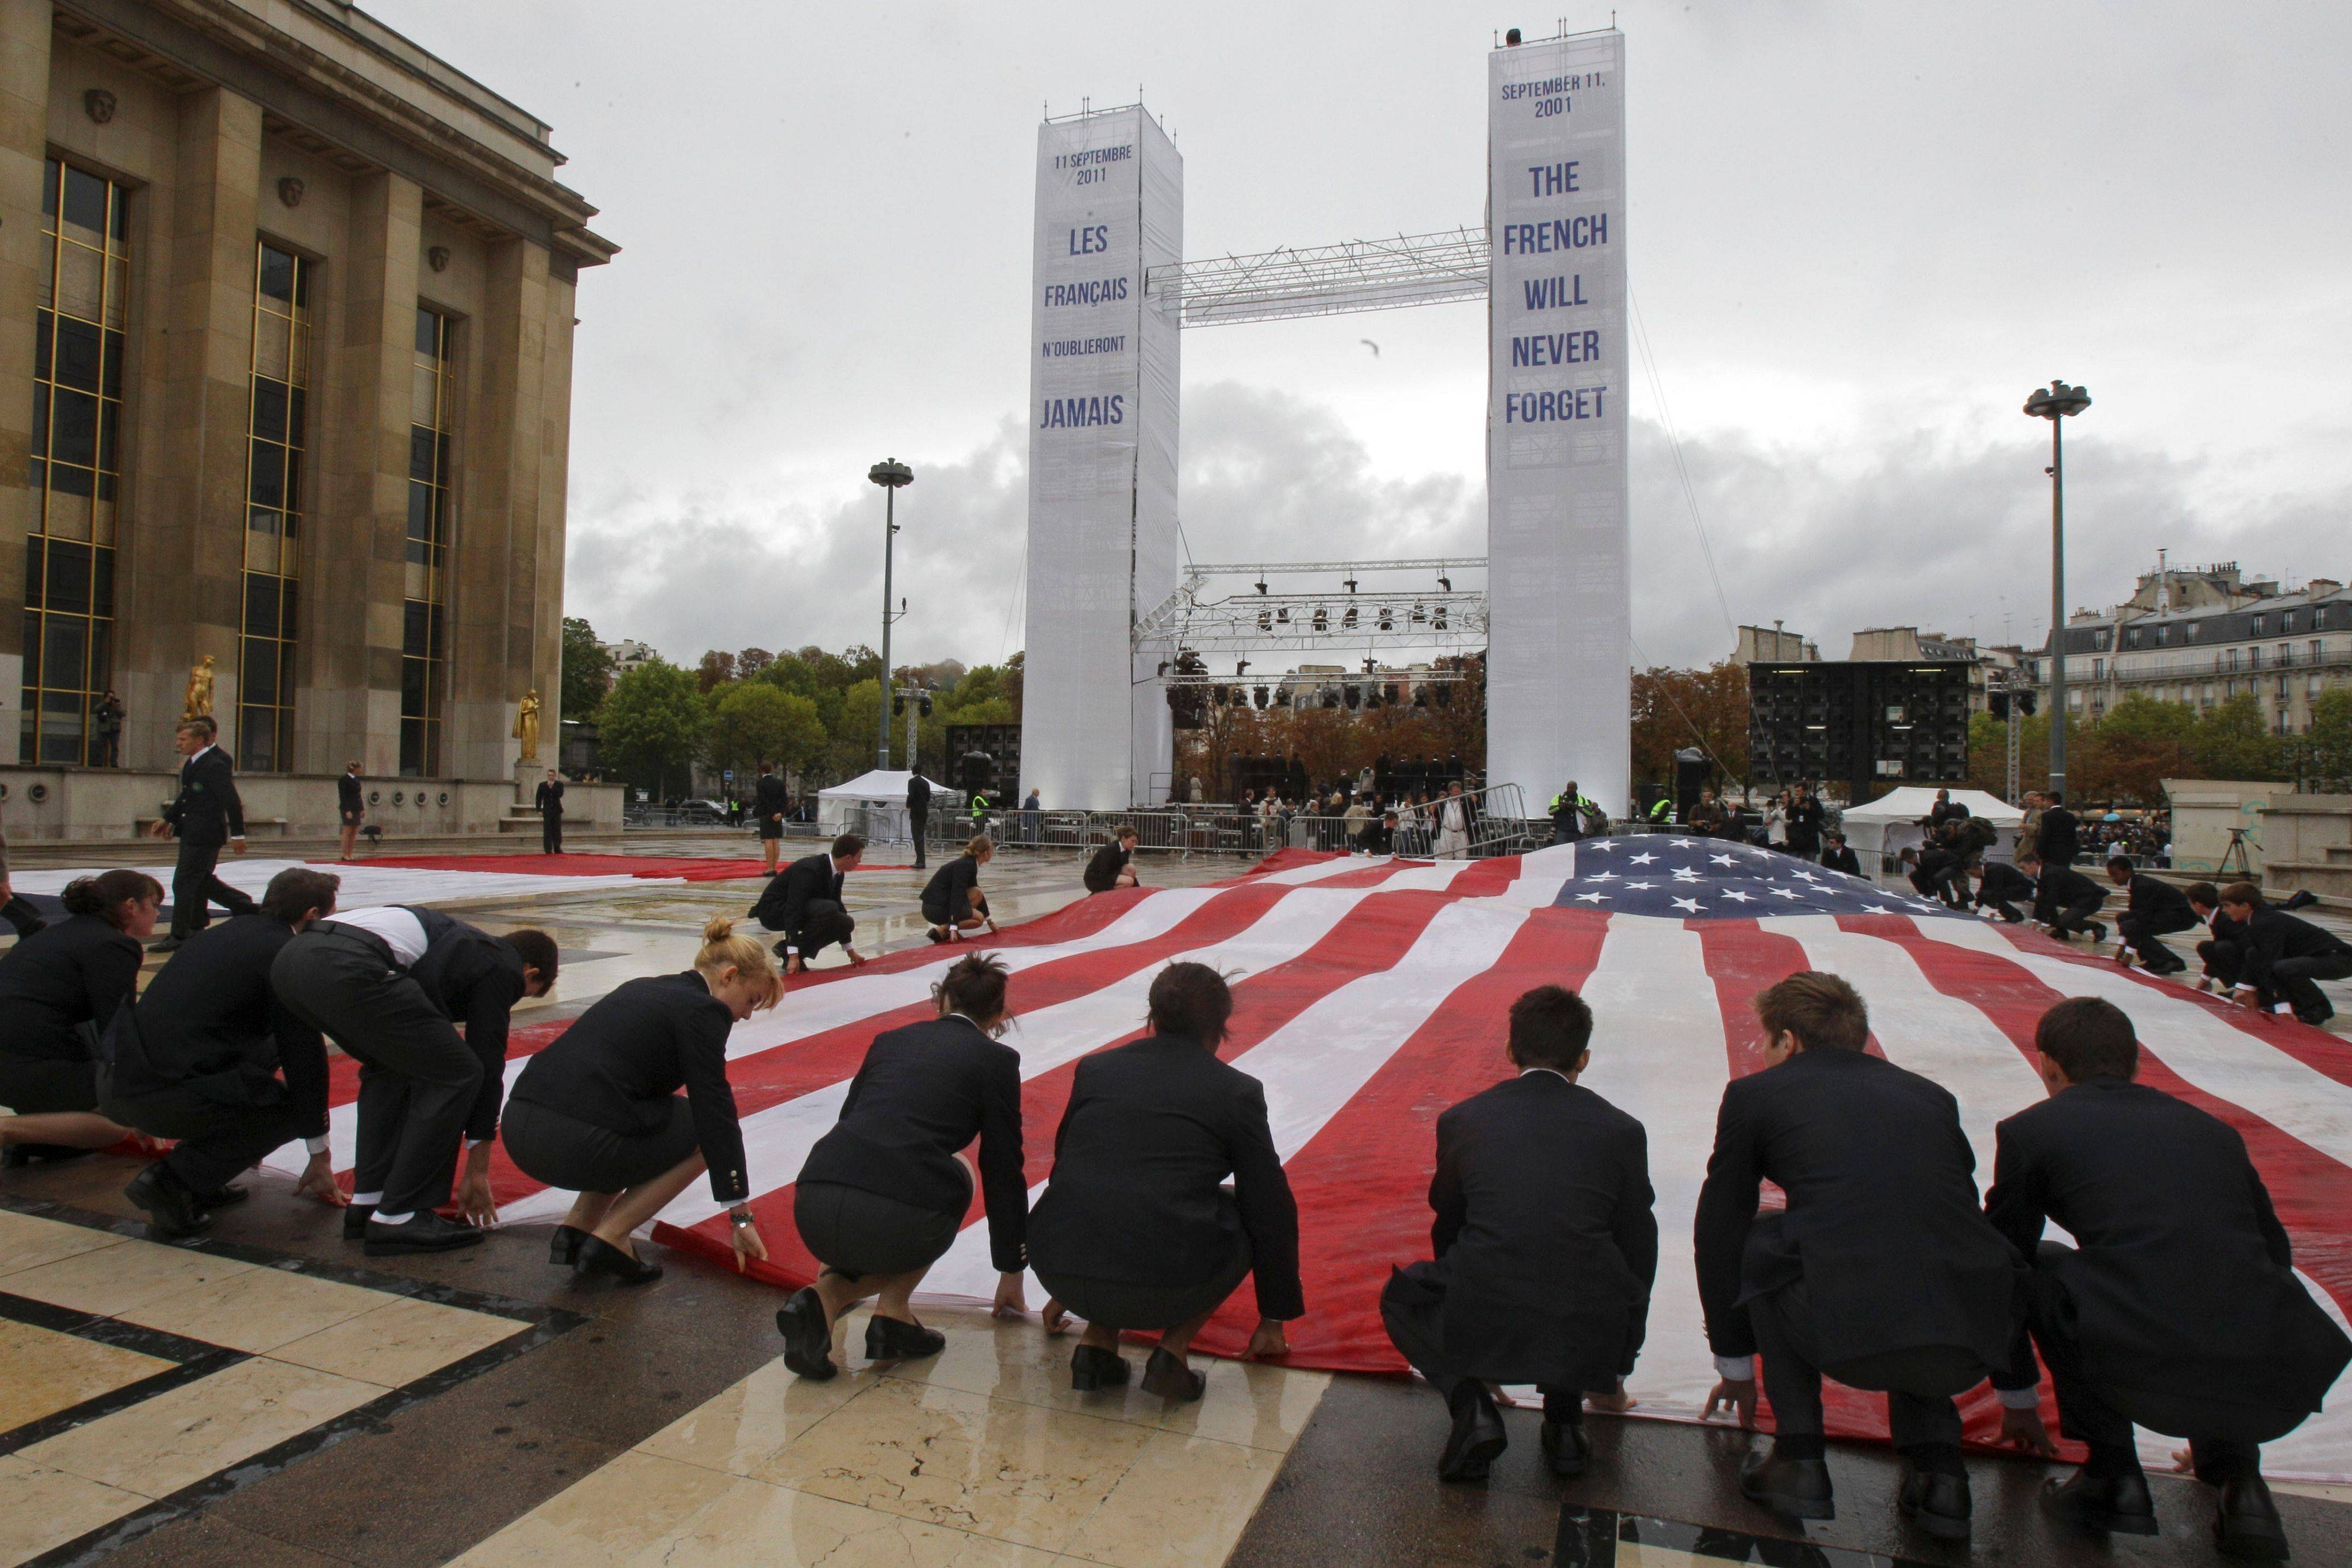 An American flag is unfurled during a commemoration to mark the 10th anniversary of the Sept. 11 attacks on the United States, at the Trocadero plaza , near the Eiffel tower in Paris, Sunday, Sept. 11, 2011.